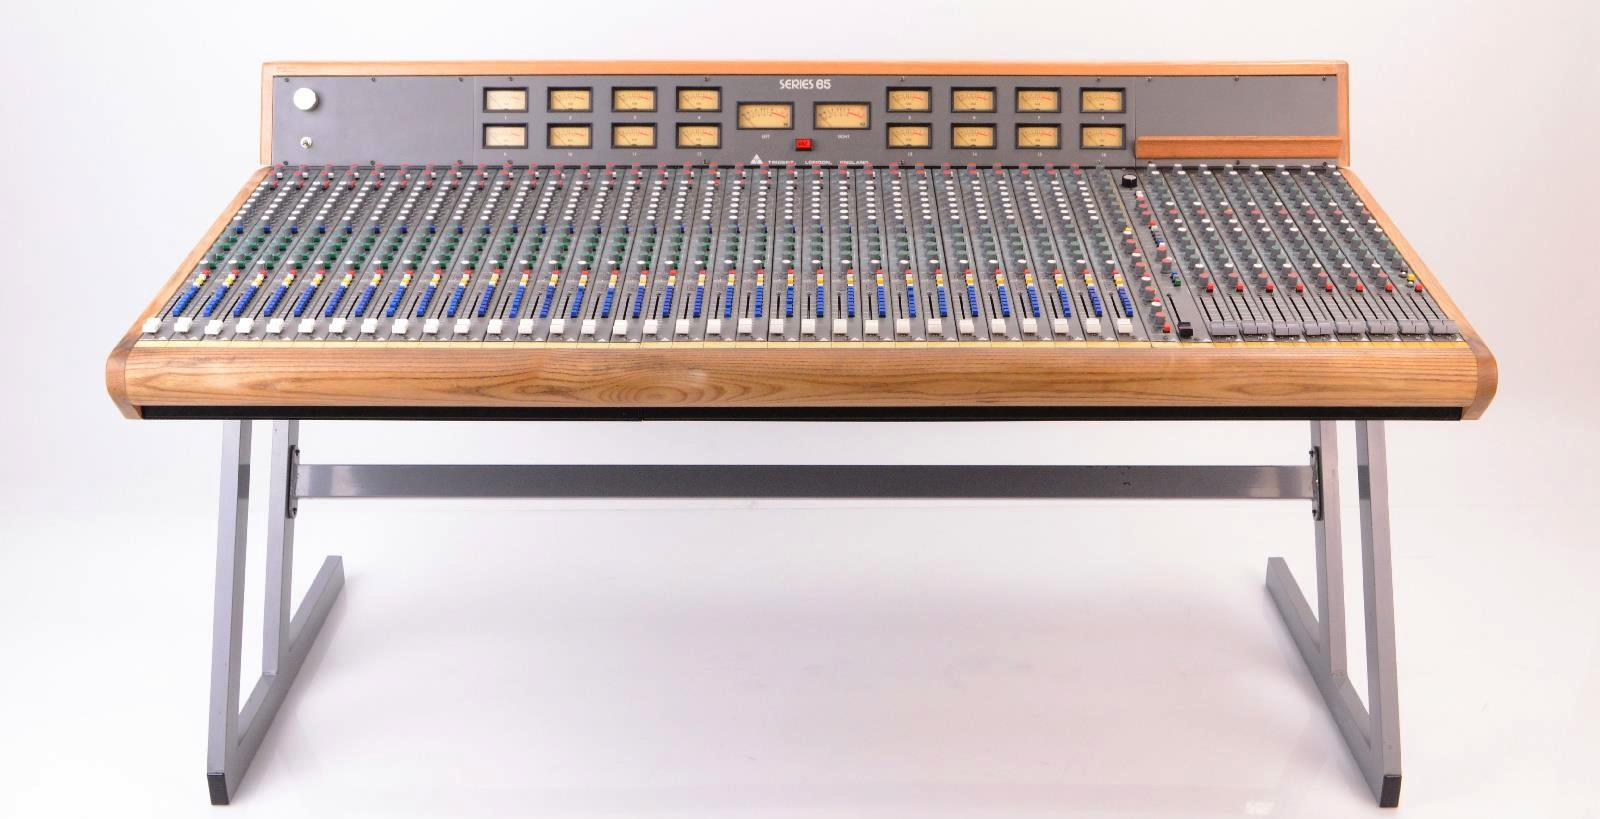 NYC Recording Studio Gear Trident 65 Analog Console